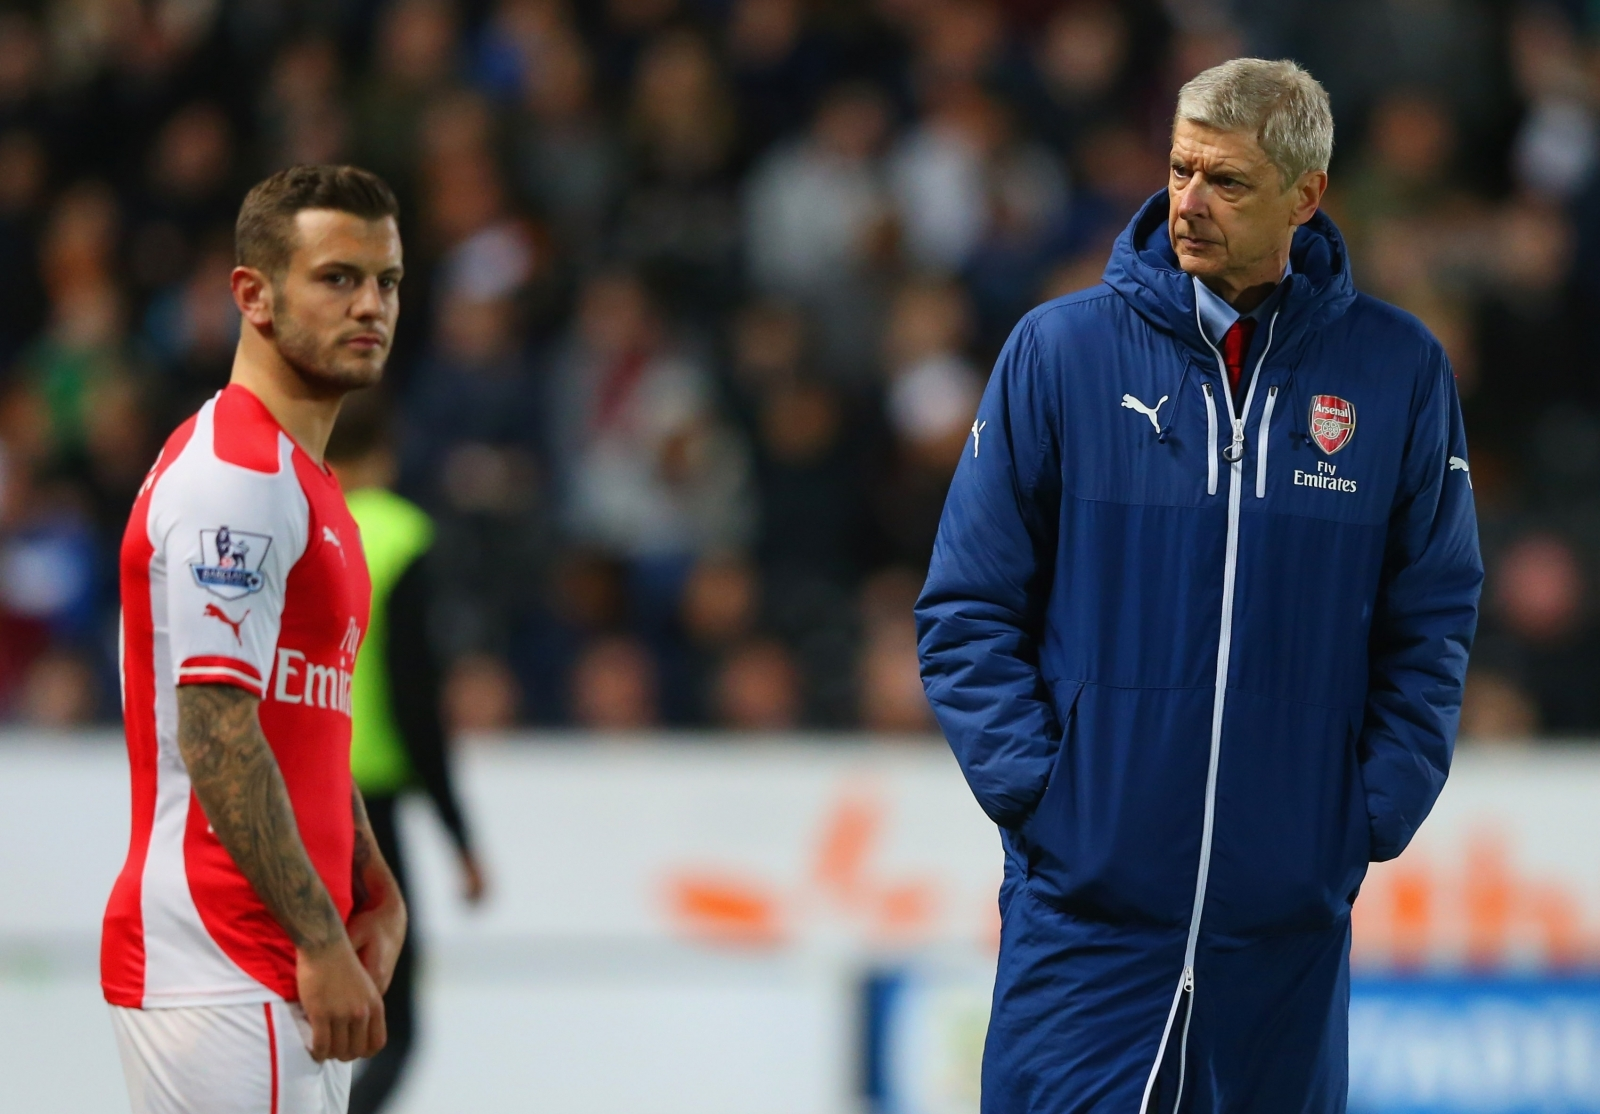 Jack Wilshere and Arsene Wenger